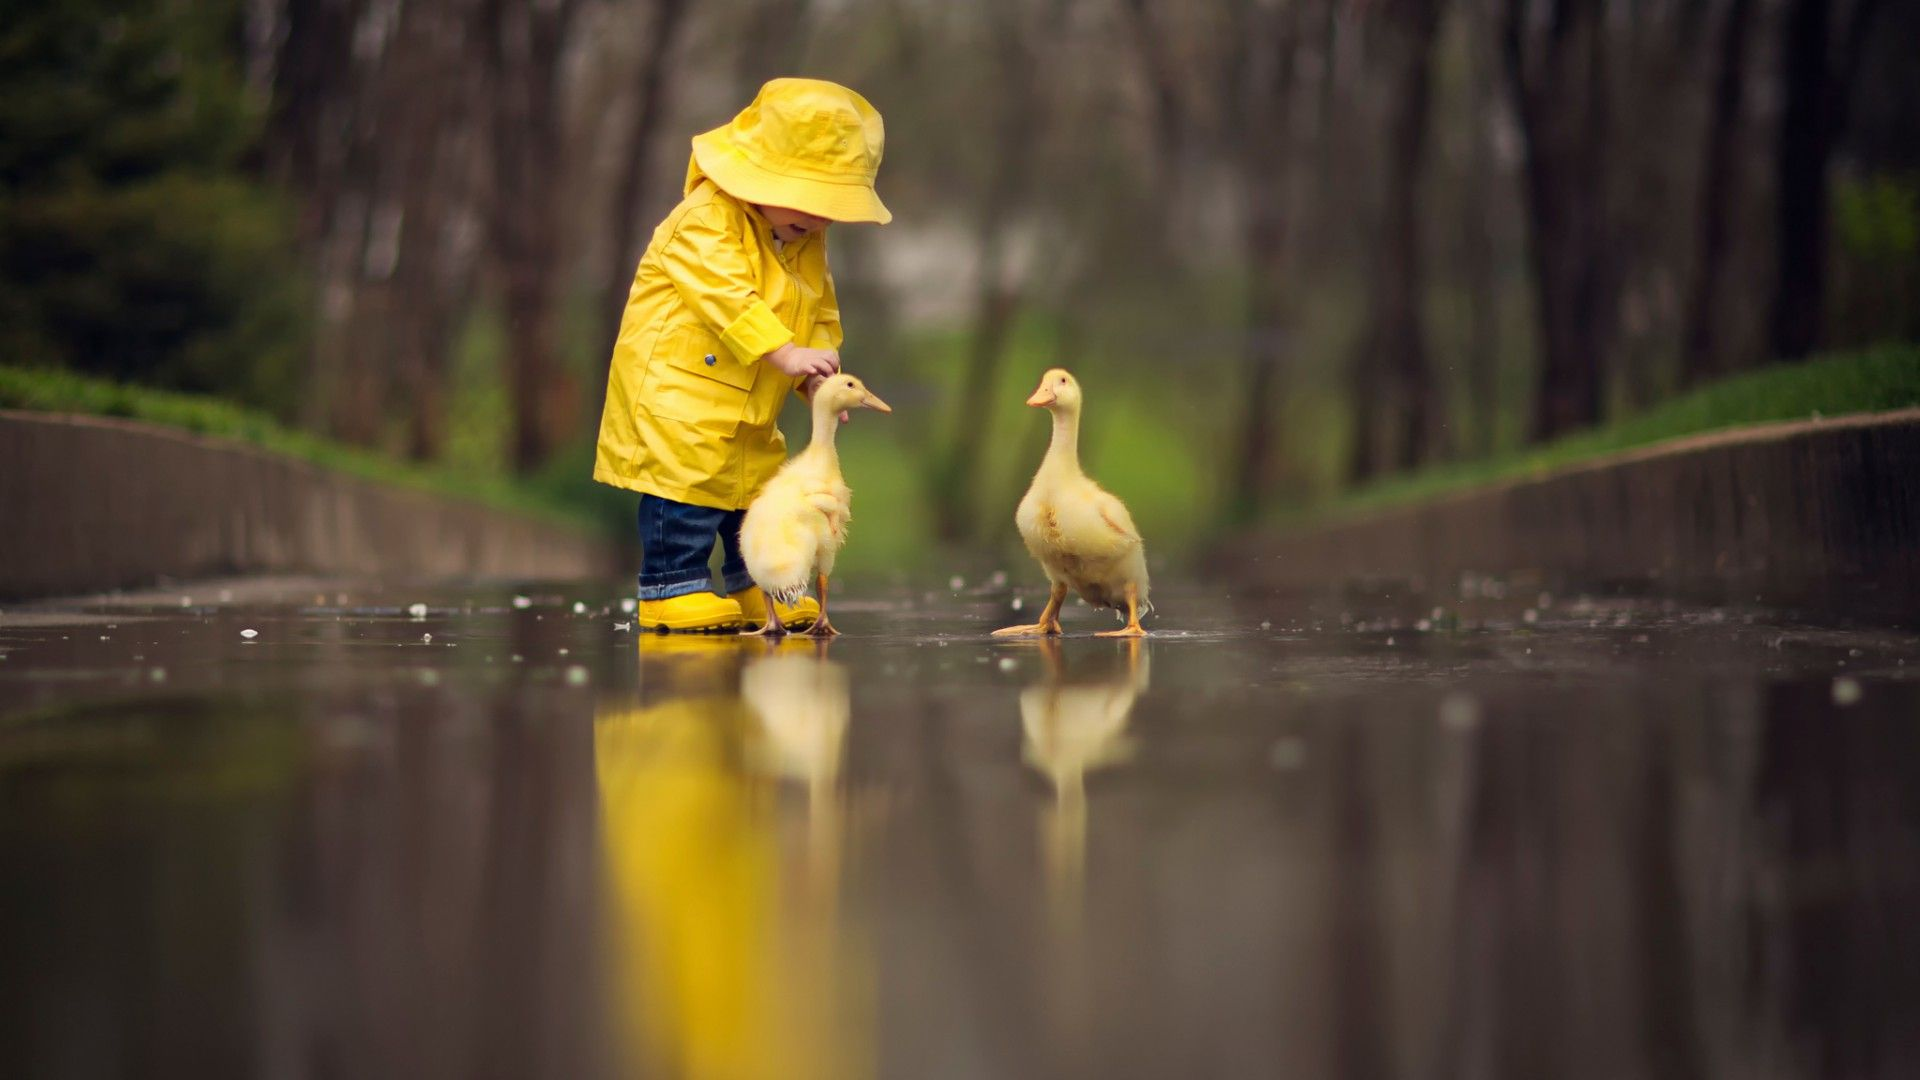 Small child with ducks [1920x1080] via Classy Bro | Cool Wallpapers ...